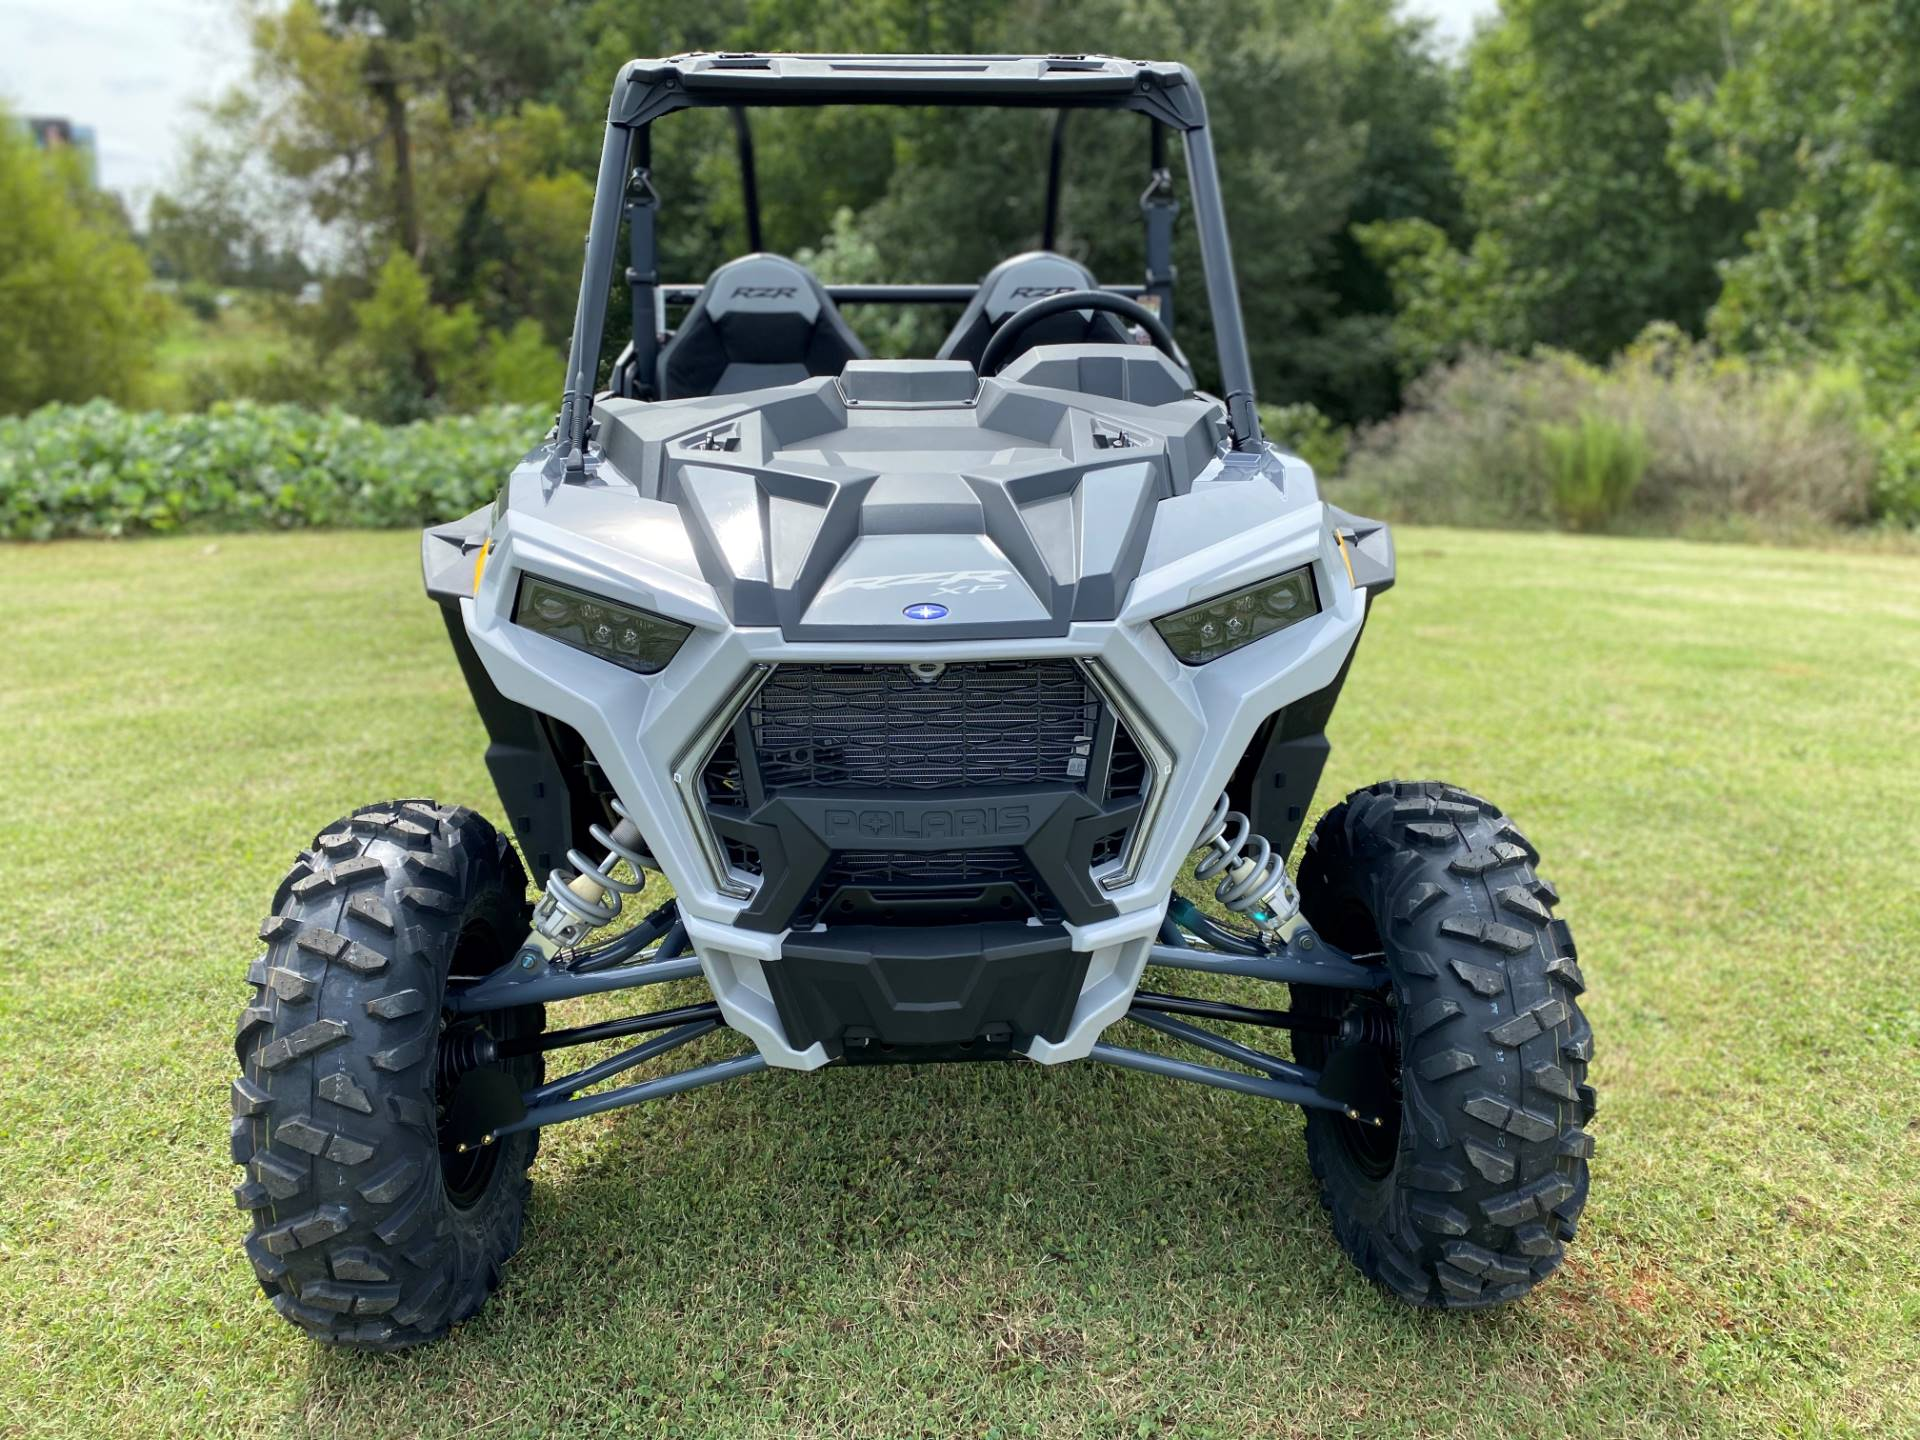 2021 Polaris RZR XP 1000 Premium in Greer, South Carolina - Photo 2